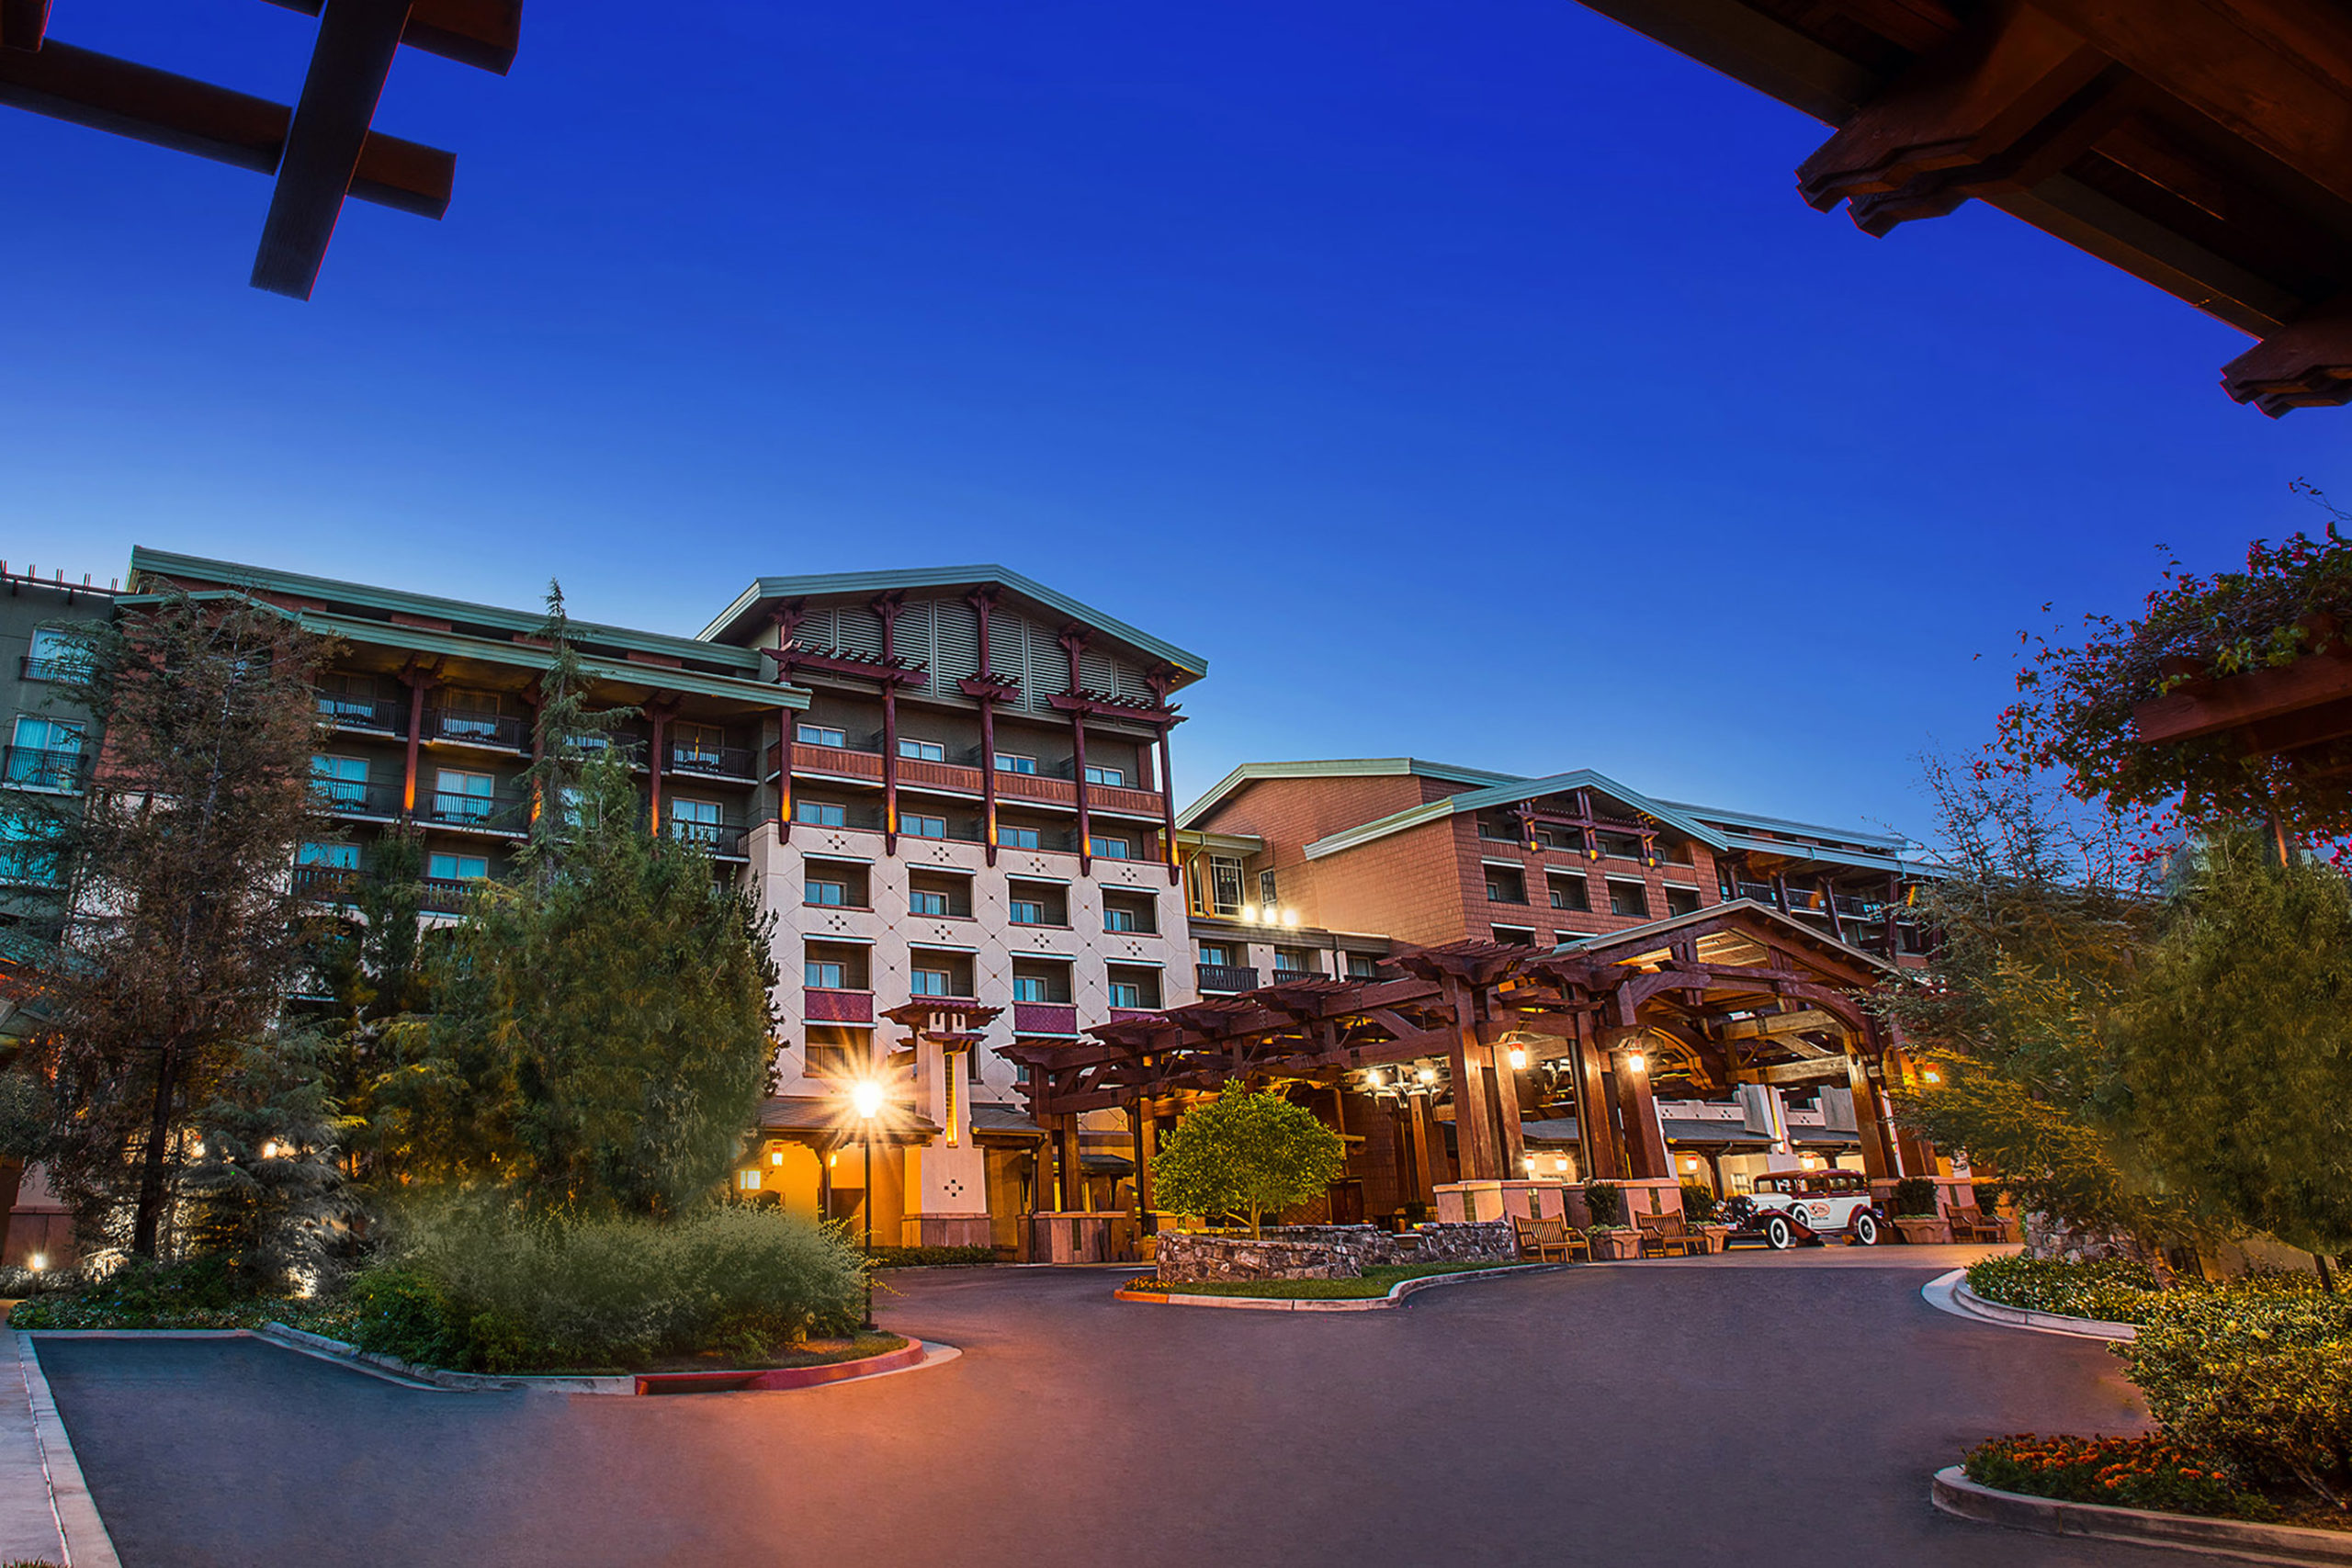 Disney's Grand Californian Hotel & Spa (pictured) plans to reopen on April 29, 2021